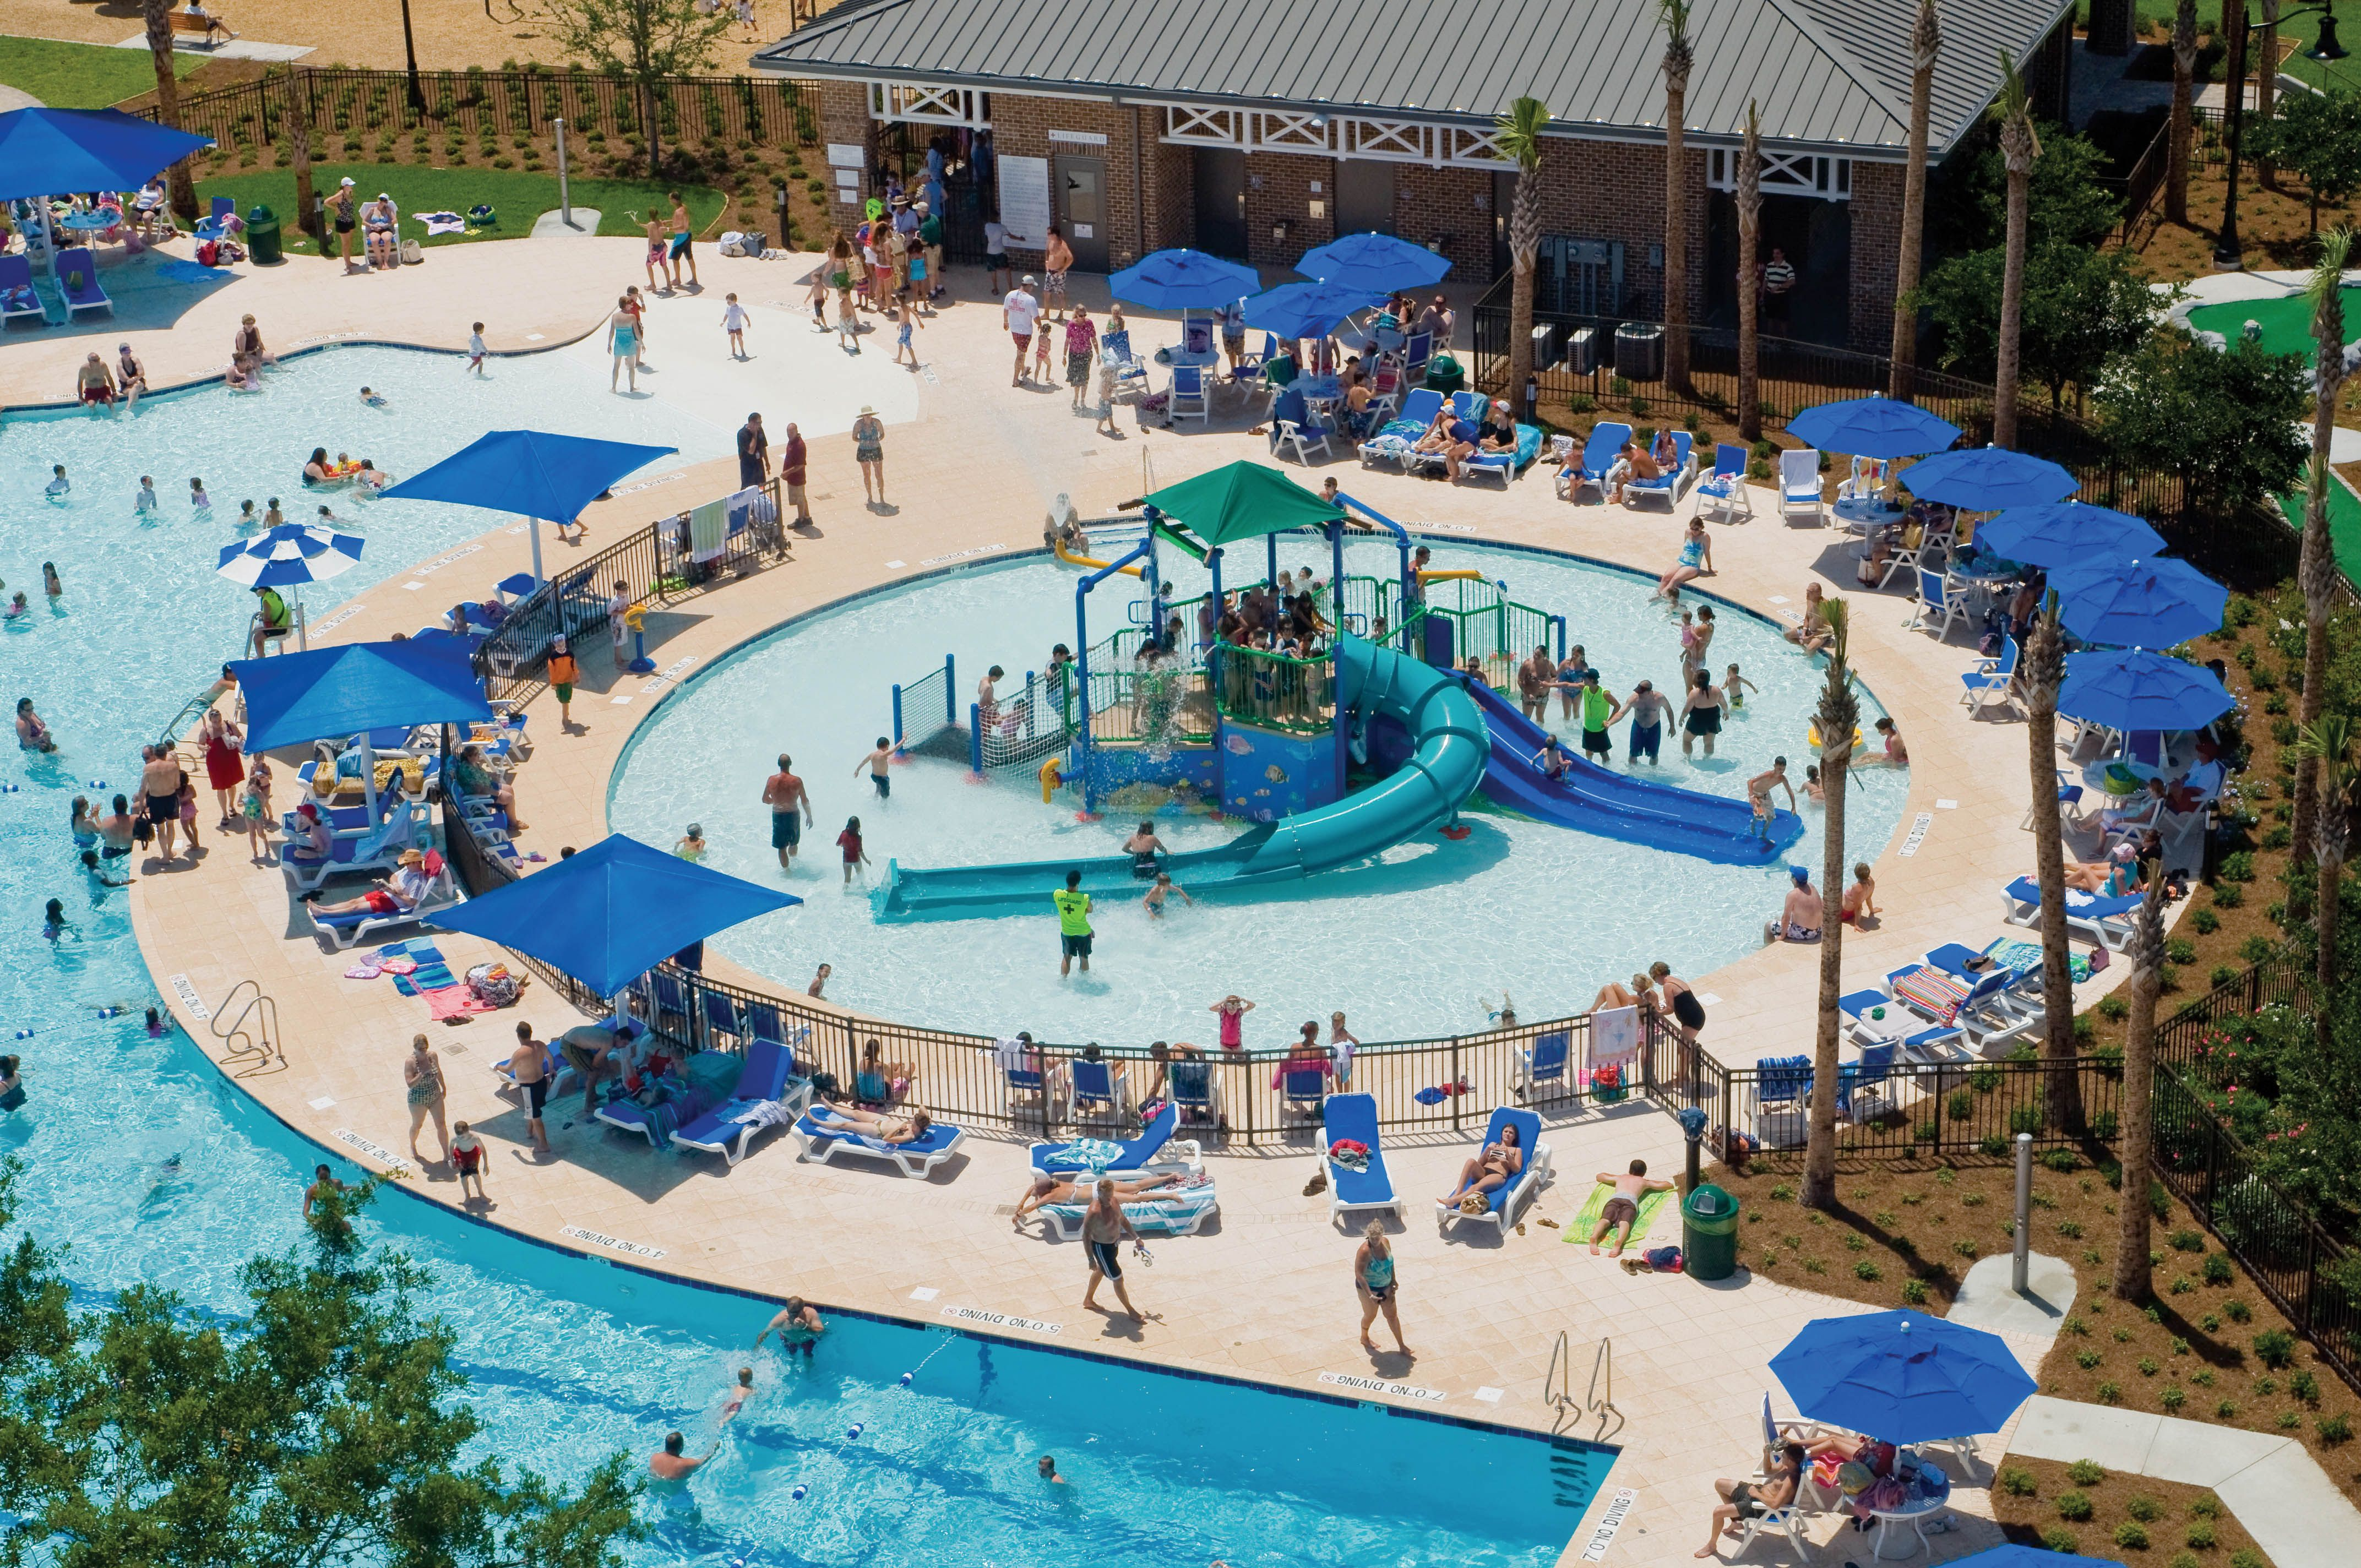 The Neptune Park Fun Zone Is The Place To Putt, Plunge And